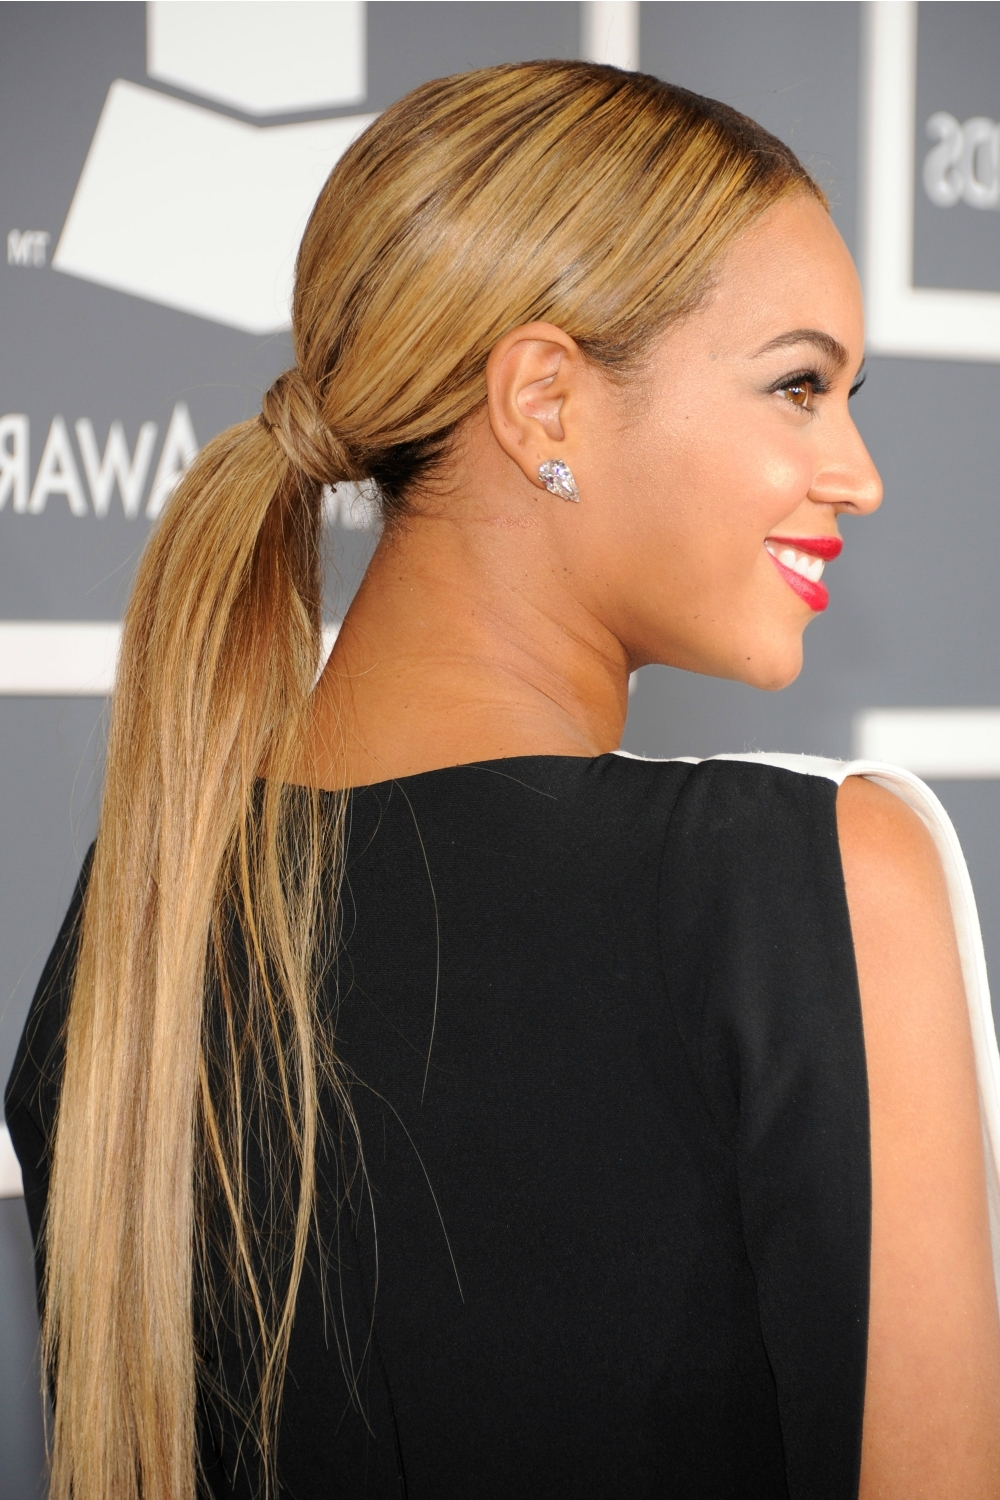 20 Ponytail Hairstyles – Easy Ponytail Ideas You Should This Summer With Regard To Most Popular Braided Glam Ponytail Hairstyles (View 1 of 20)